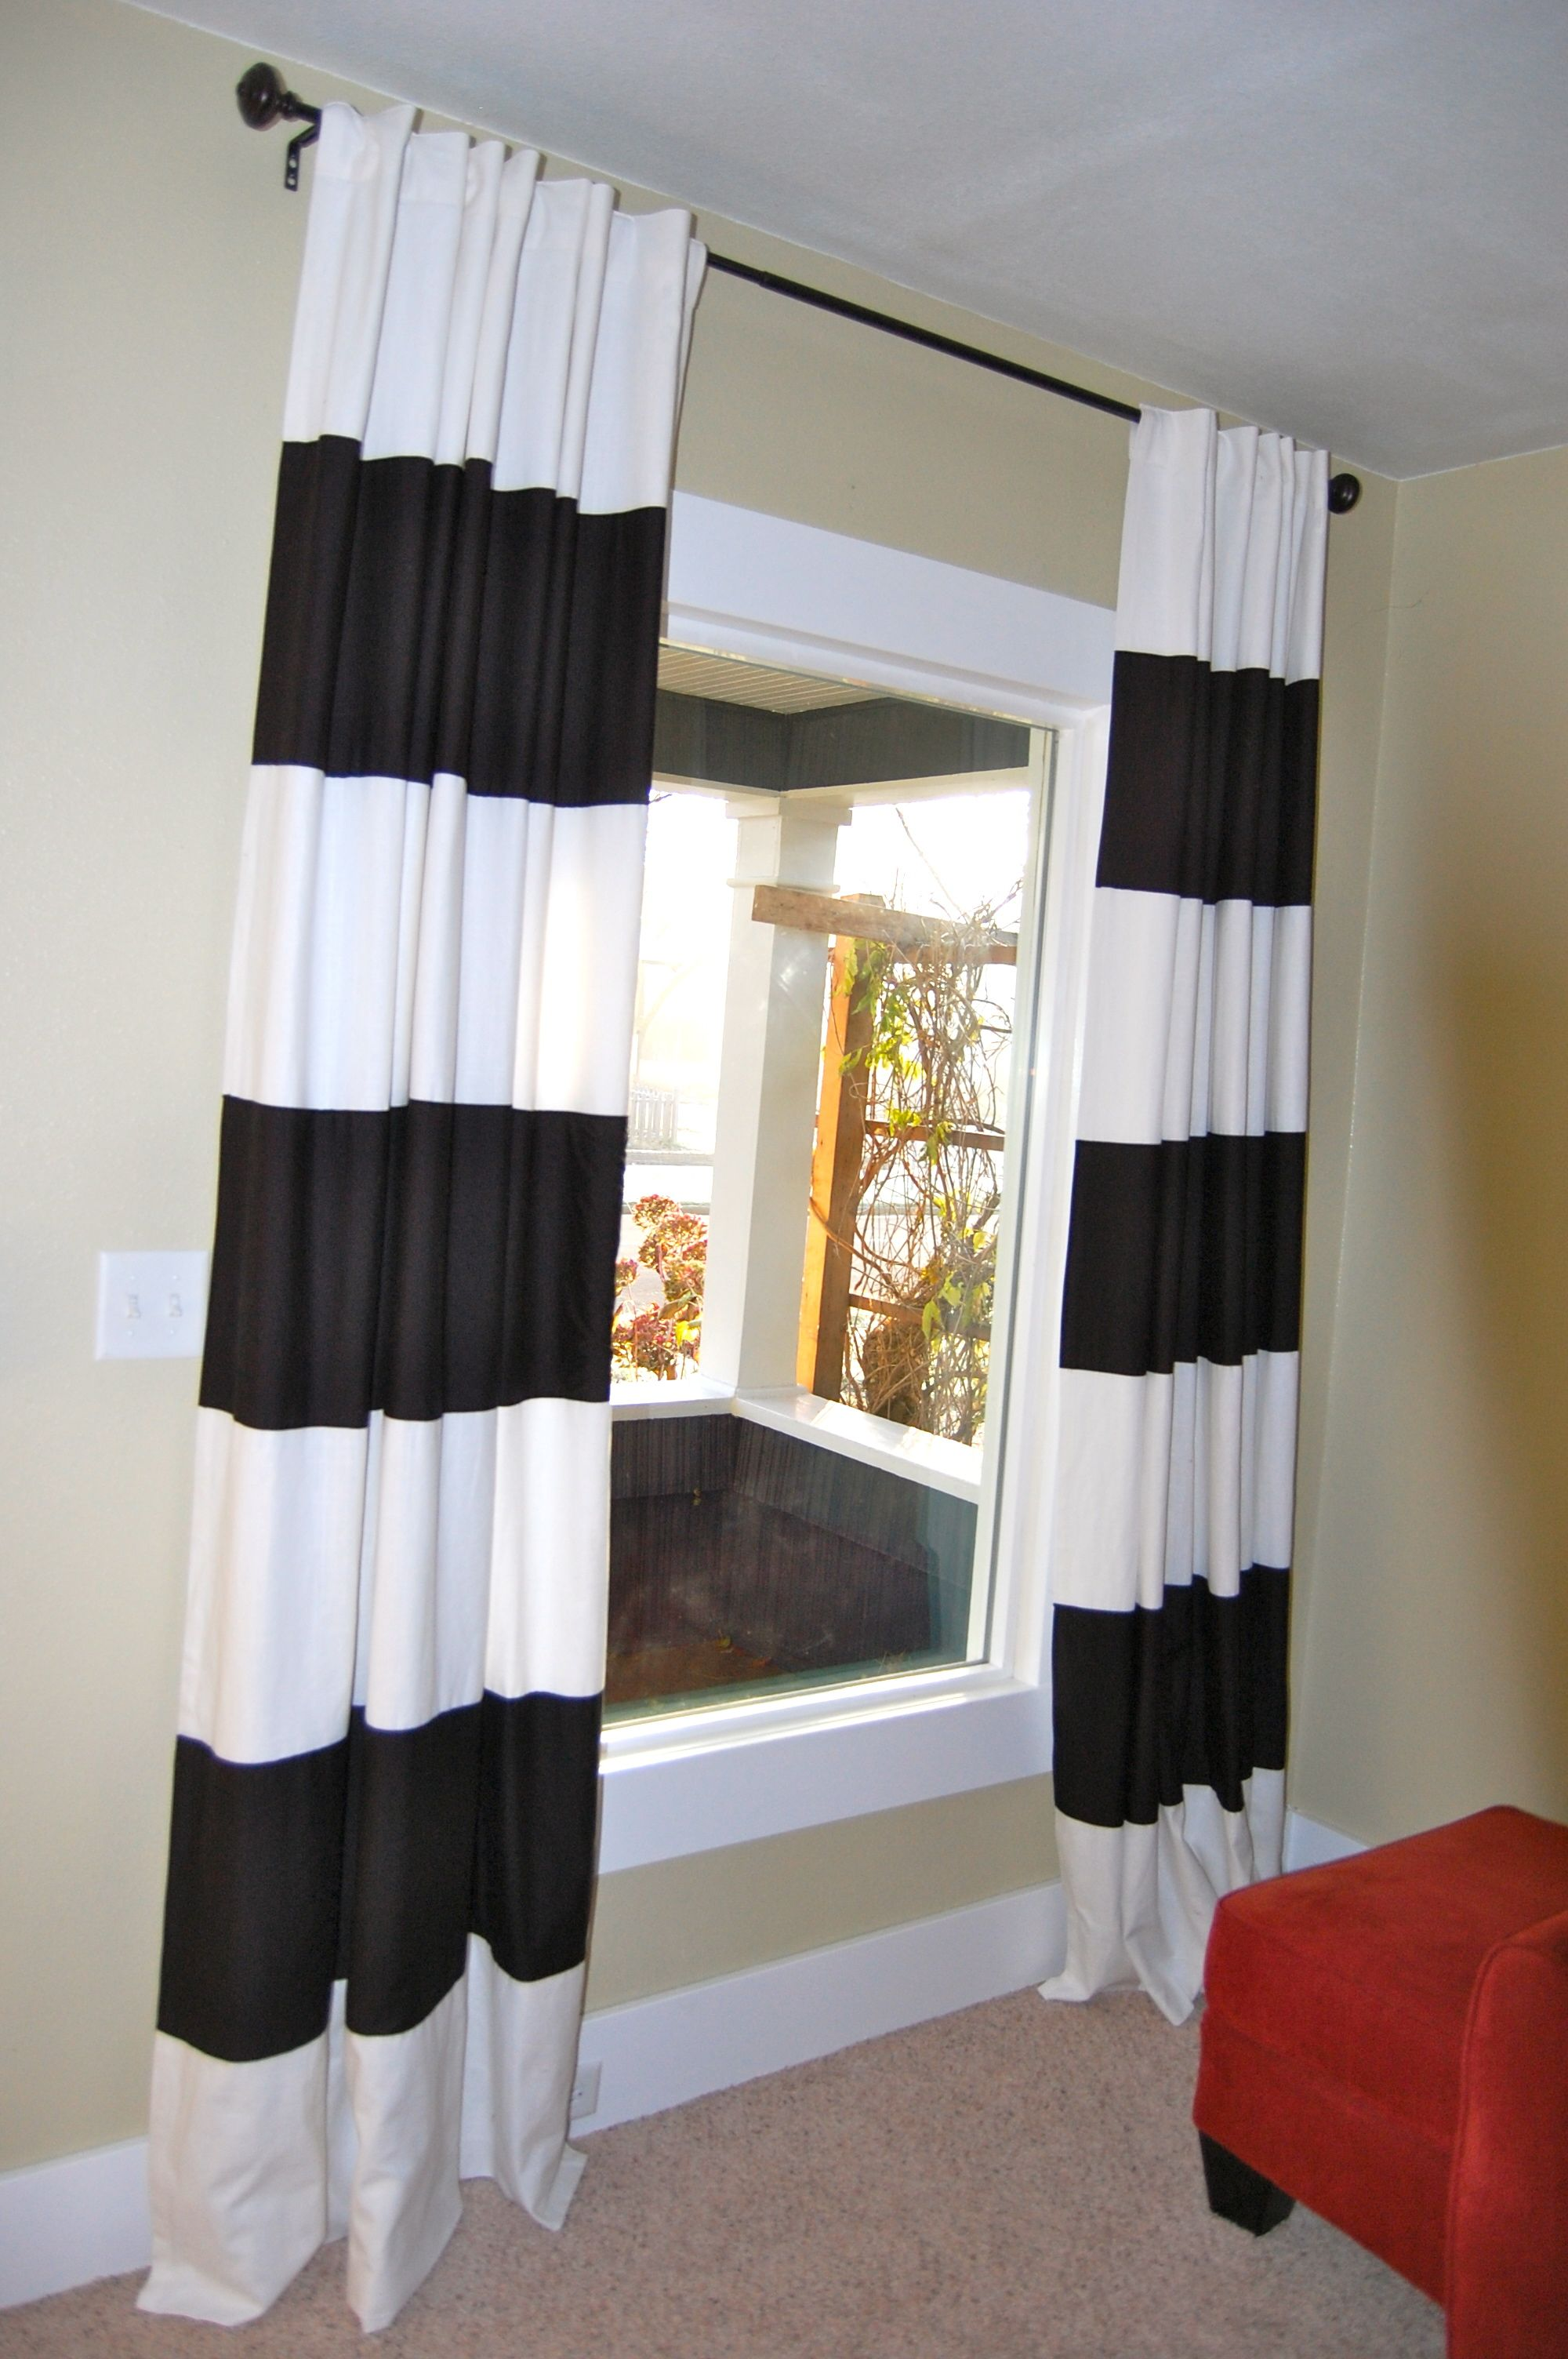 DSC 0012 14 Diy Curtains White Curtain From Ikea Sewn In Black Stripes Sheetswalmart